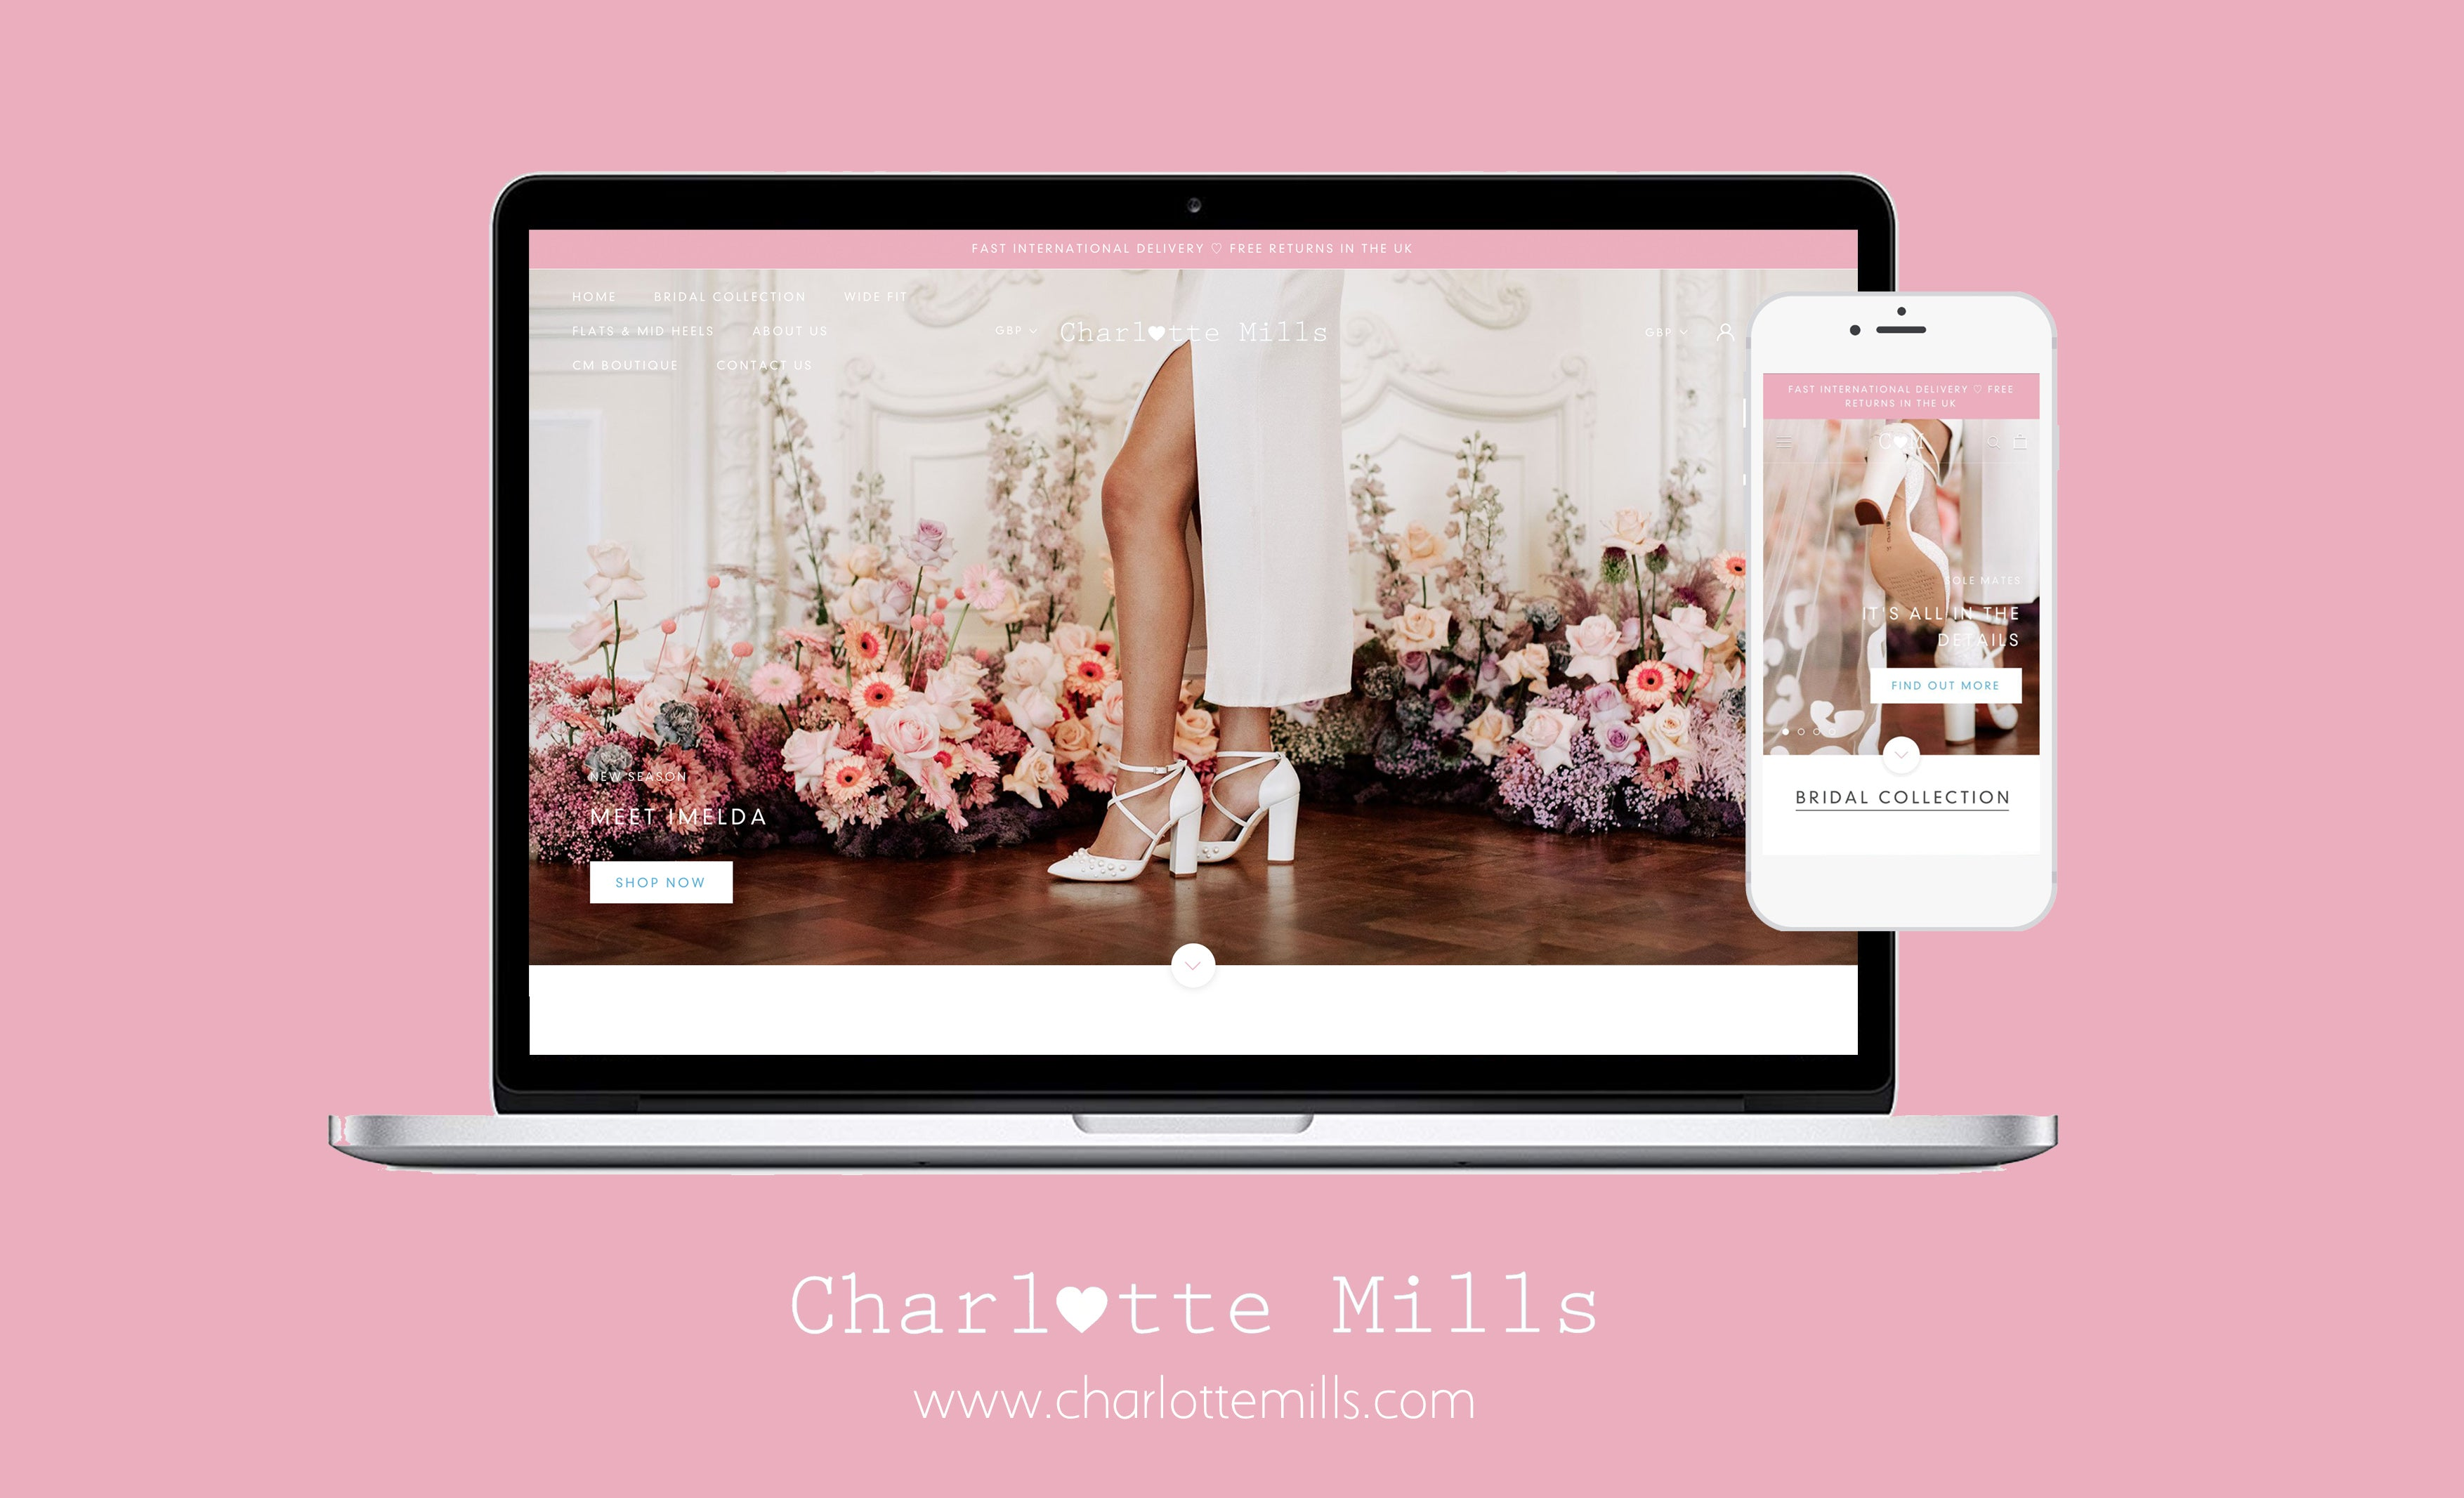 charlotte mills new website - 2020 bridal shoe collection